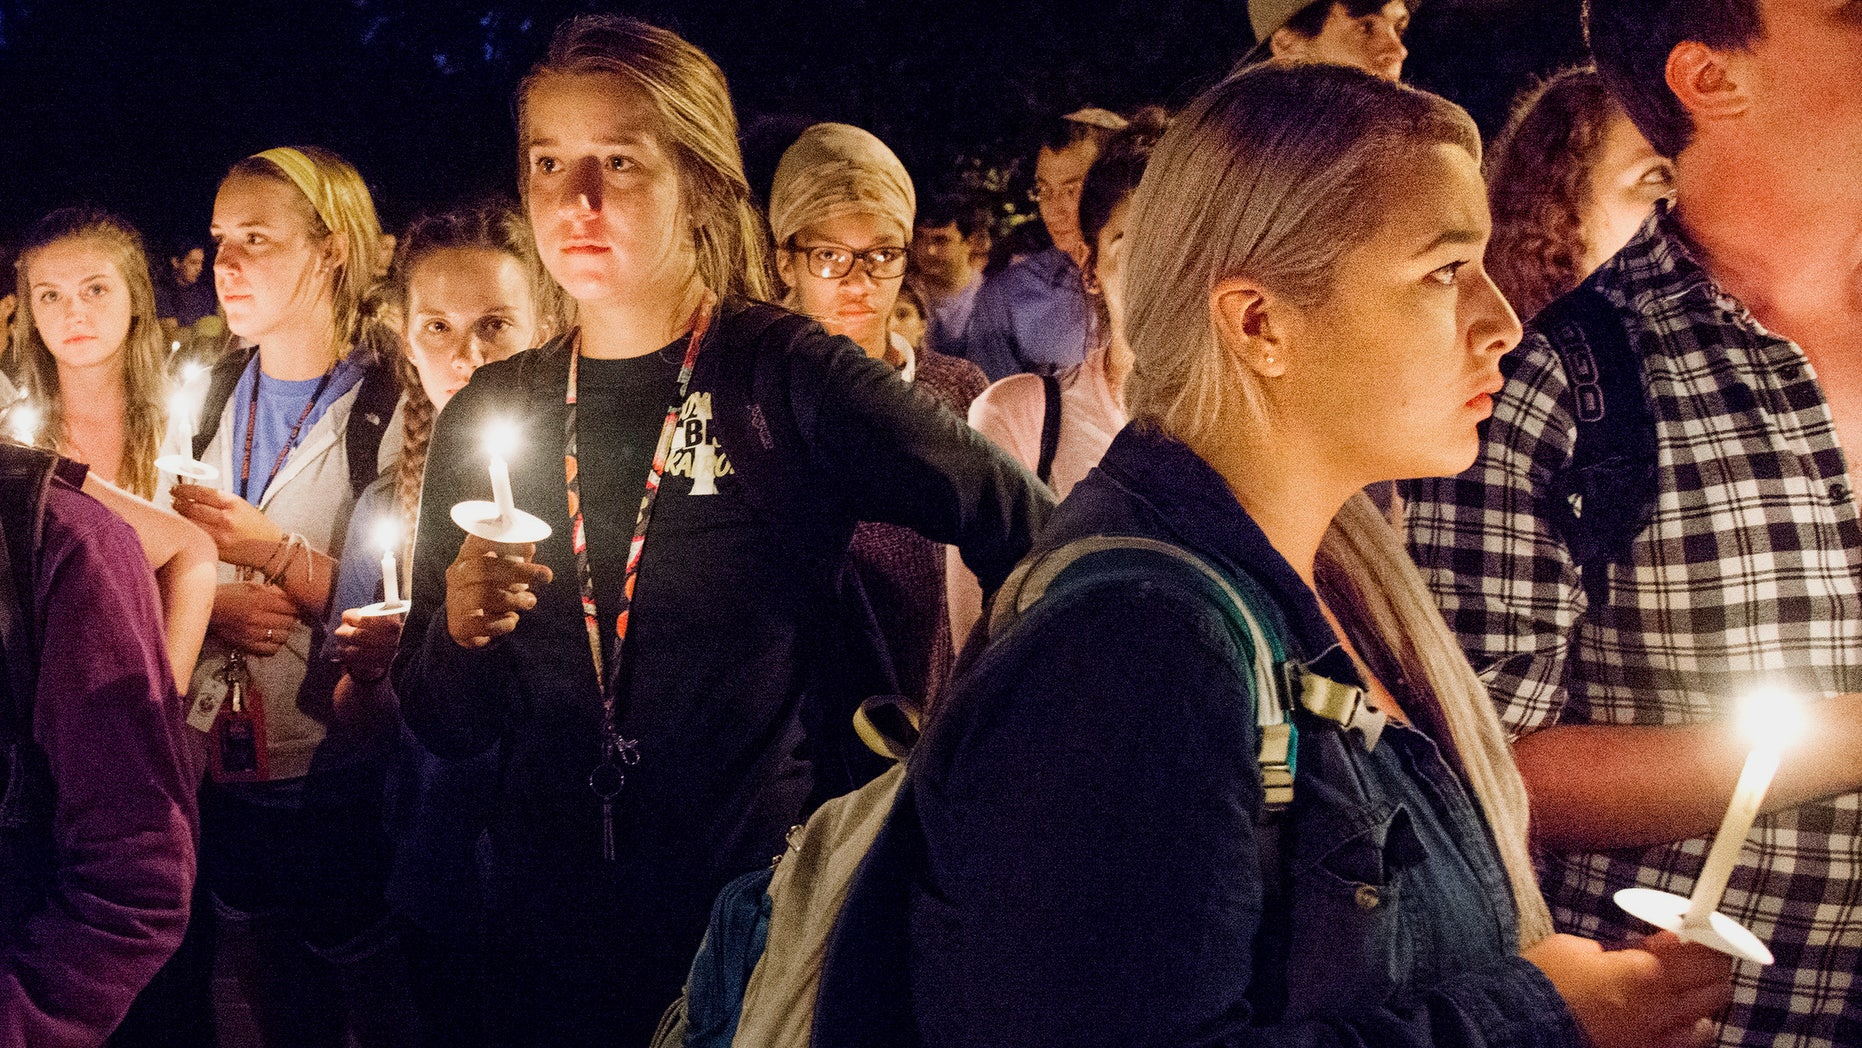 University of Illinois students attend a candlelight vigil in remembrance of the deadly shooting.